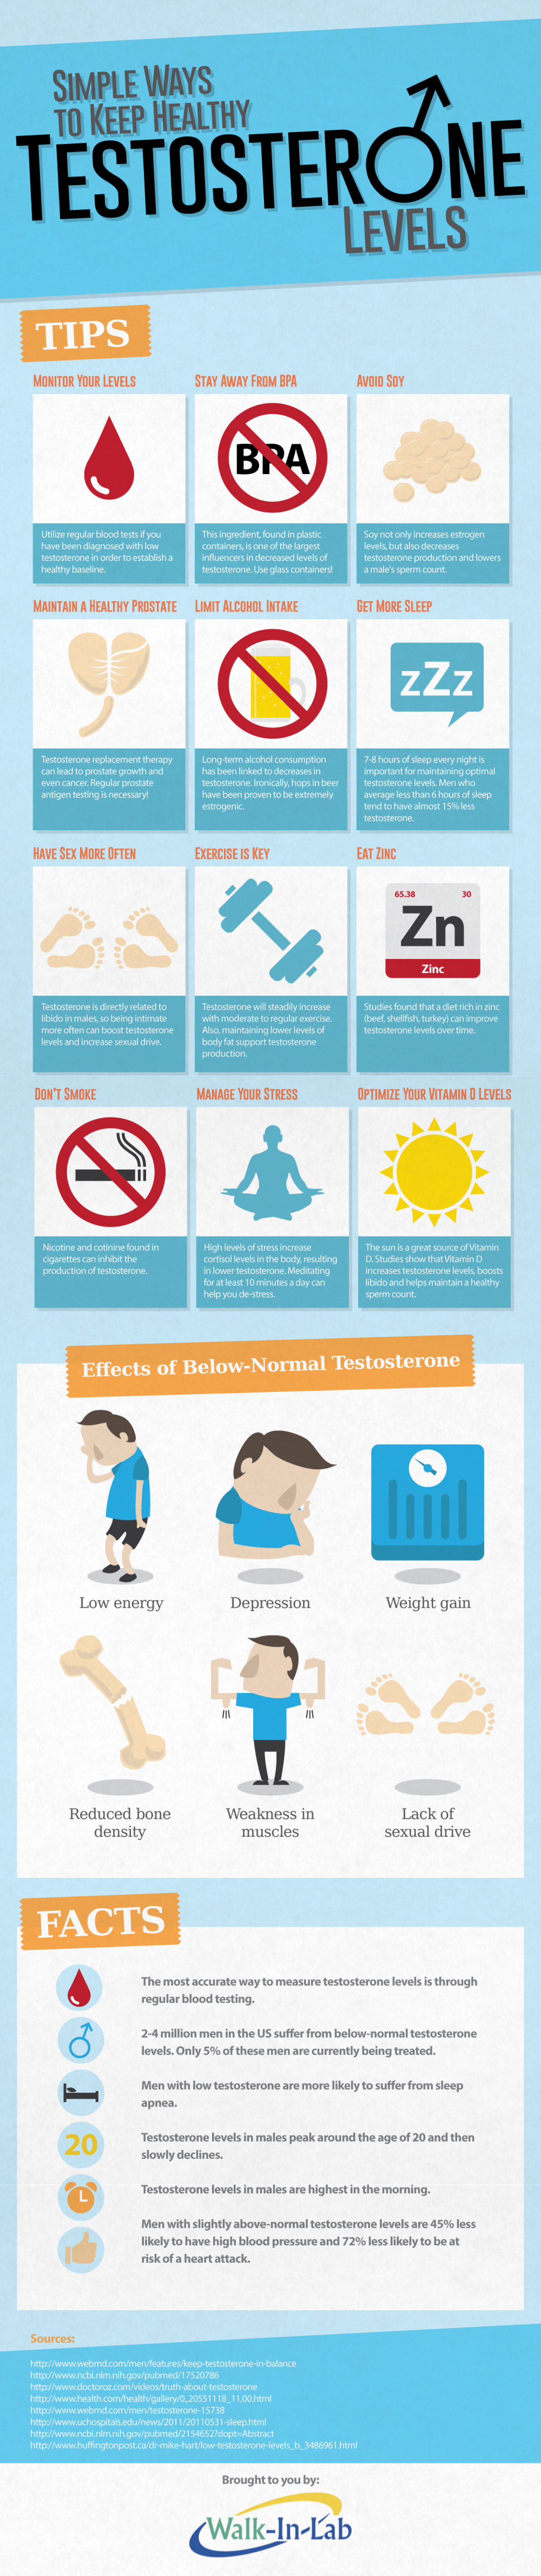 Simple Ways to Keep Healthy Testosterone Levels Infographic